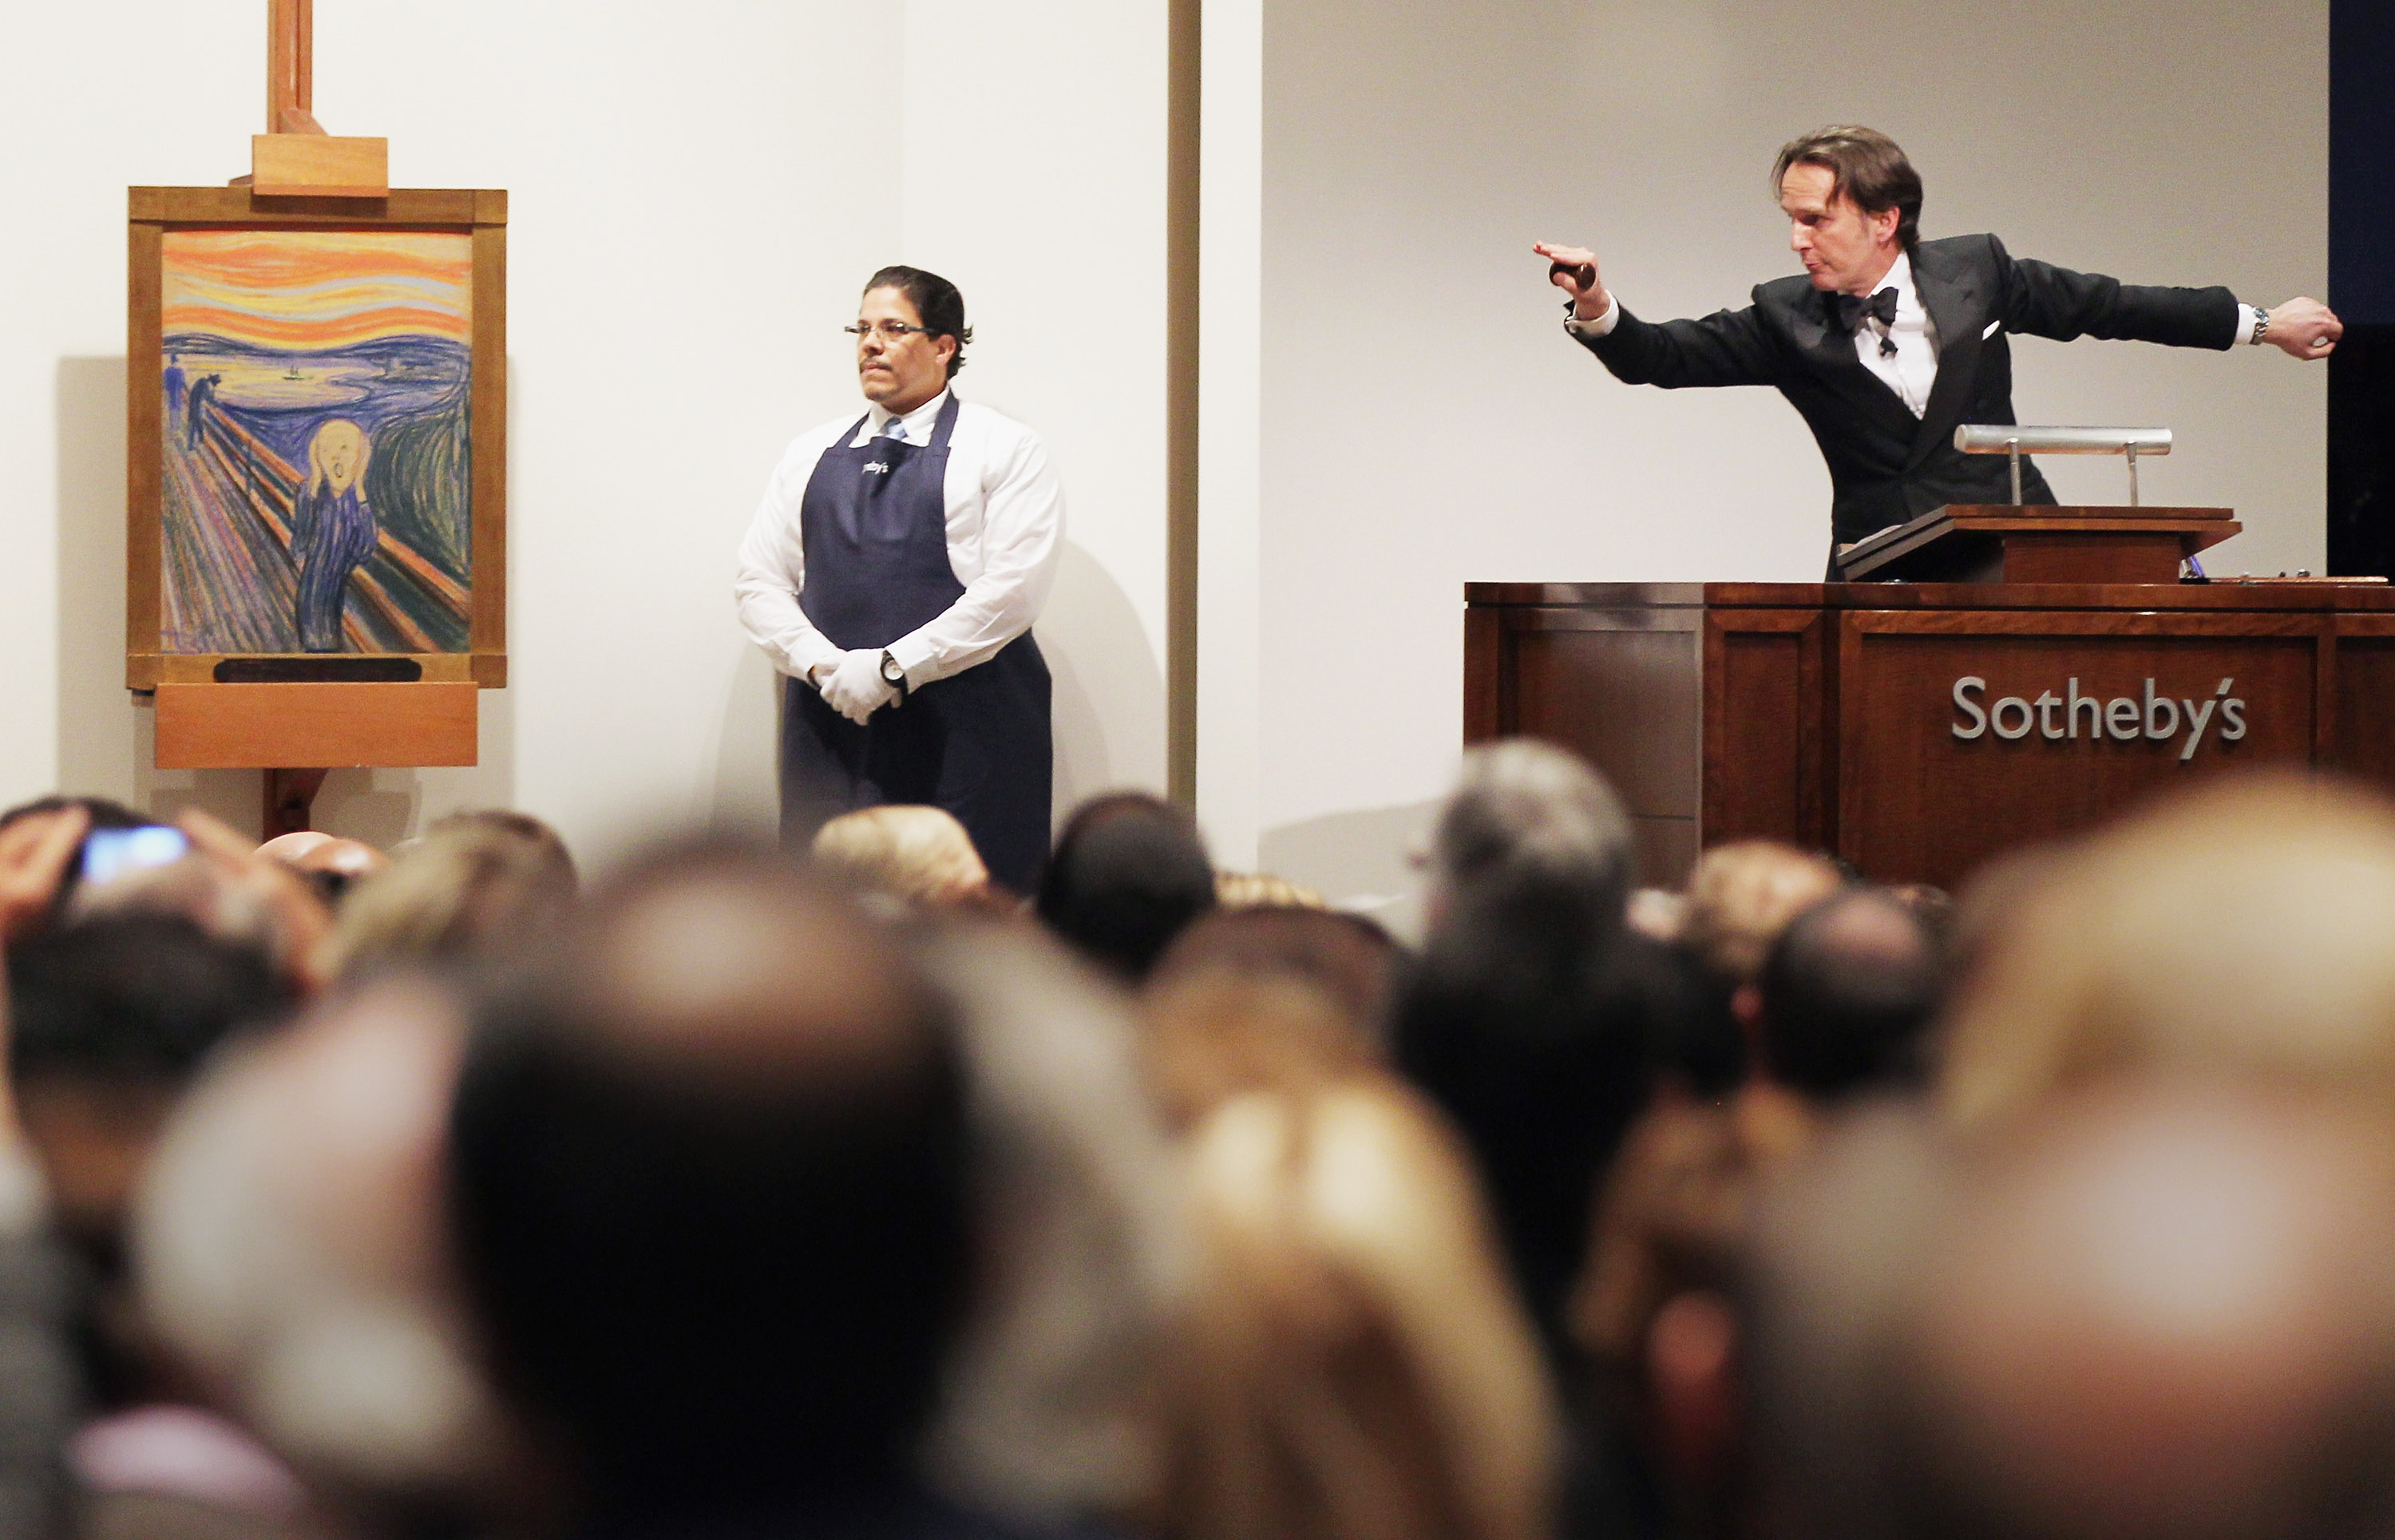 Edvard Munch's 'The Scream' is auctioned at Sotheby's May 2012 in New York City.